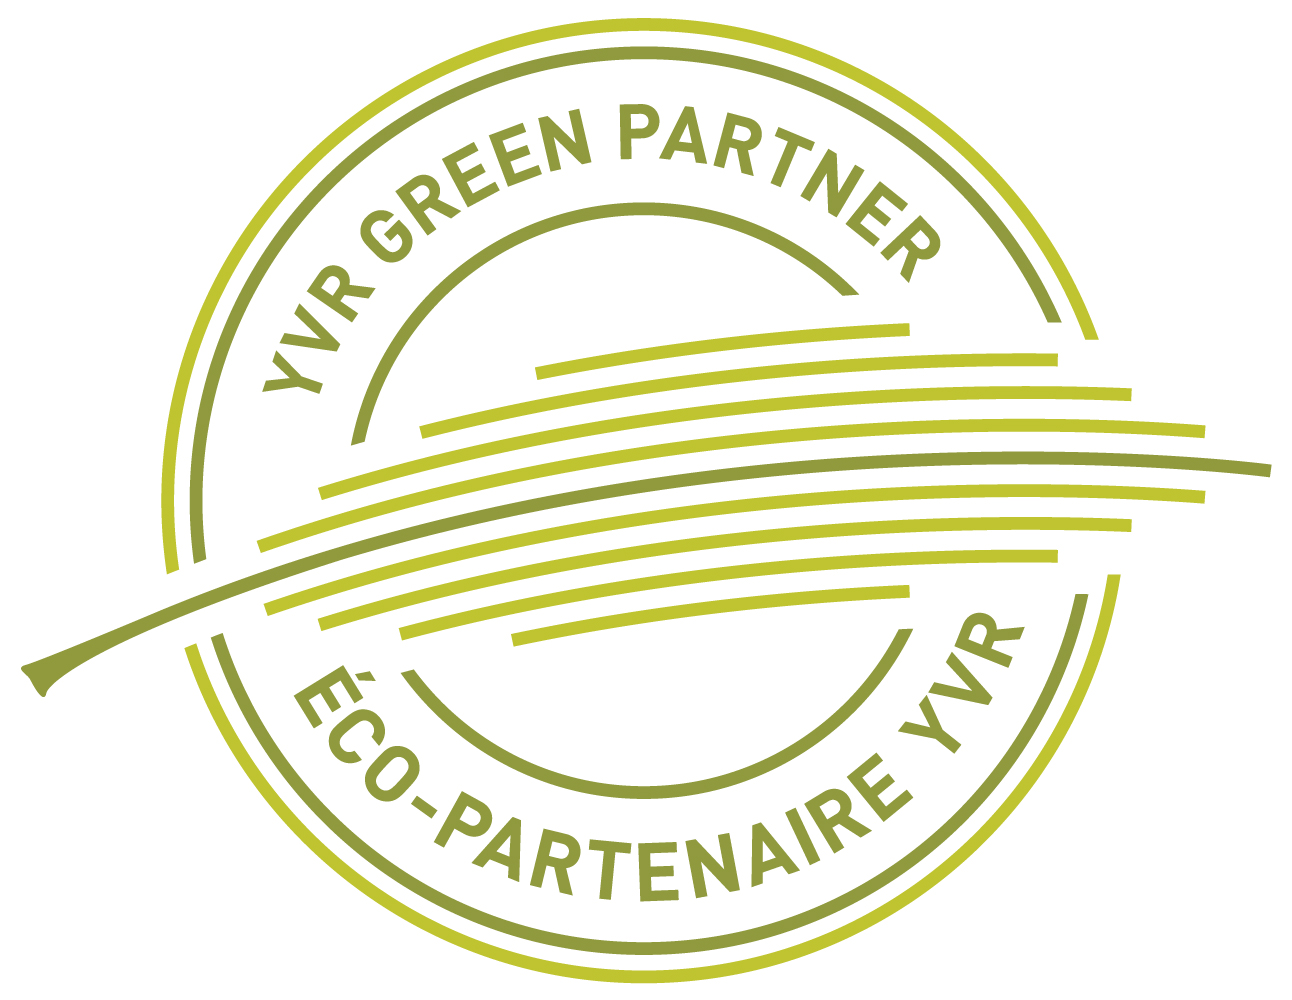 YVR Green partner Logo